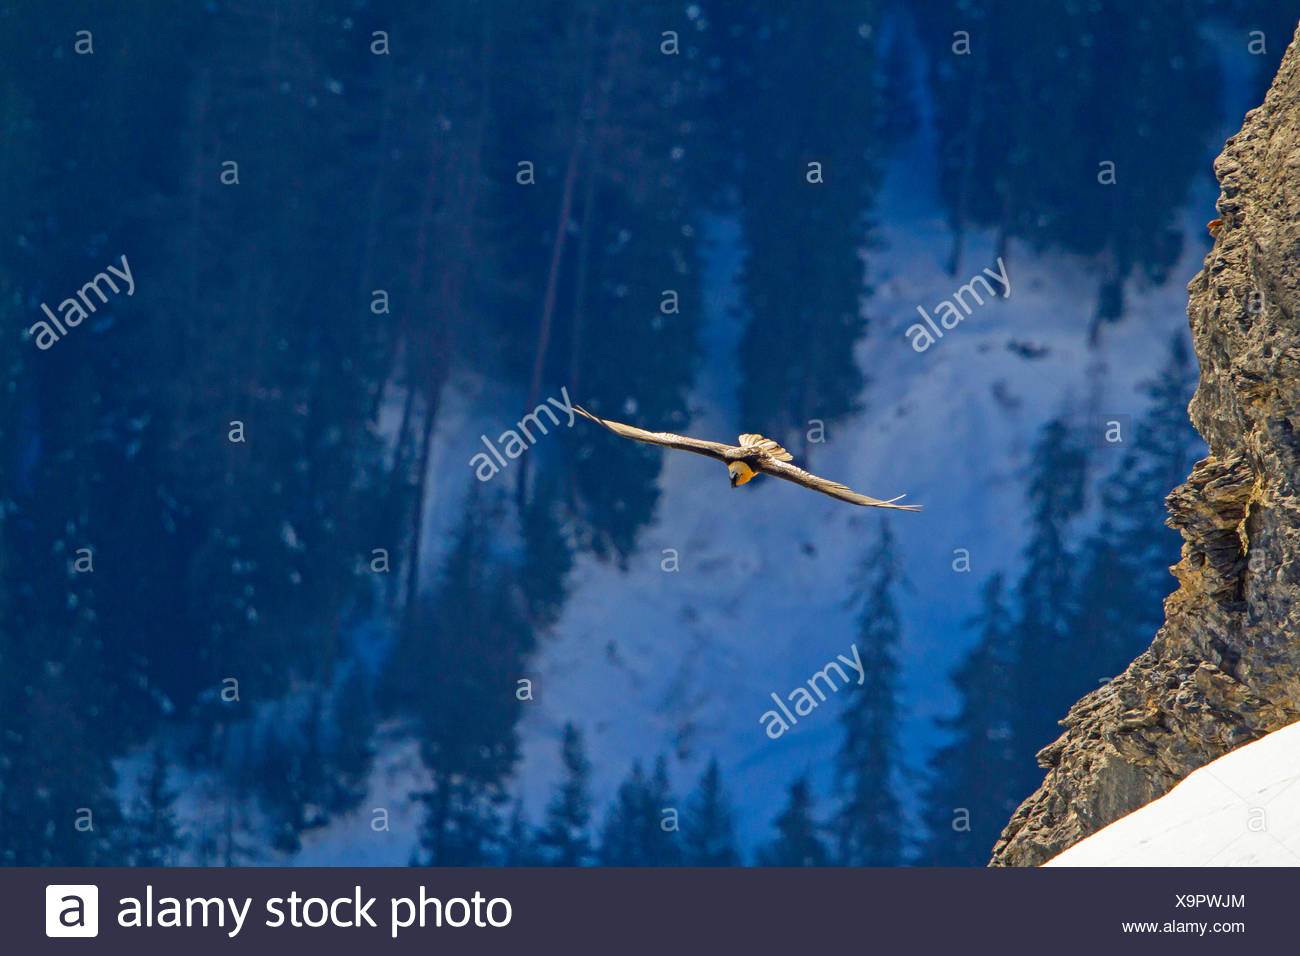 Lammergeier, Bearded Vulture (Gypaetus barbatus), bearded vulture in flight before a mountain forest, Switzerland, Valais, Leukerbad - Stock Image